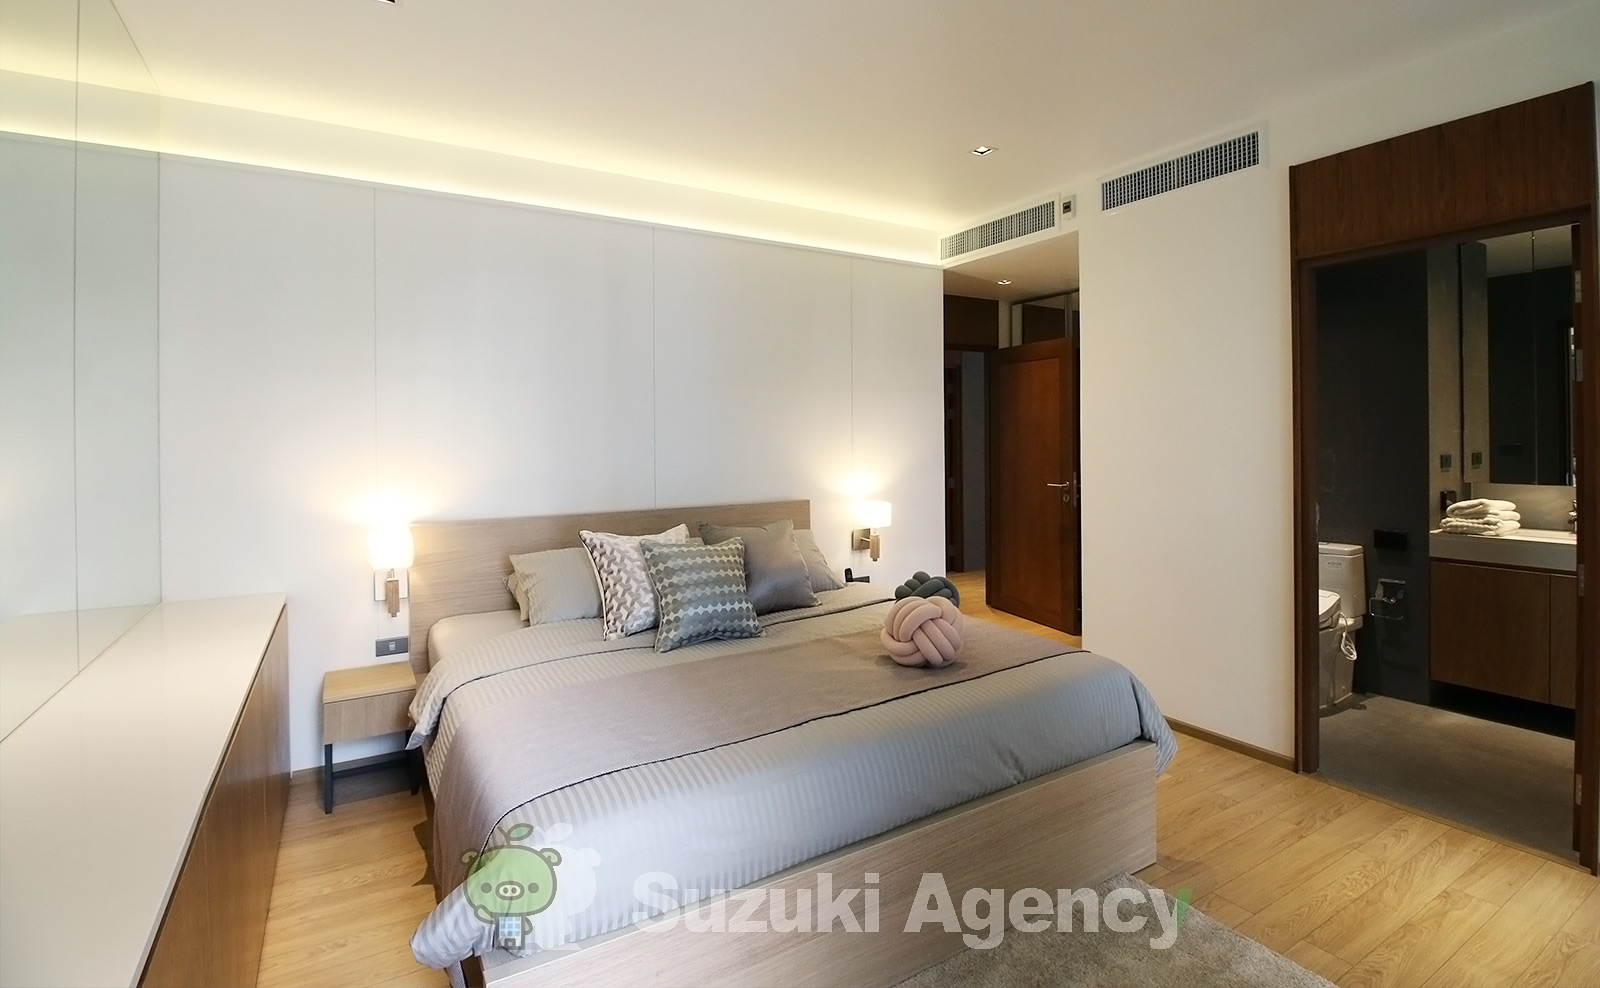 Jitimont Residence:2Bed Room Photos No.8